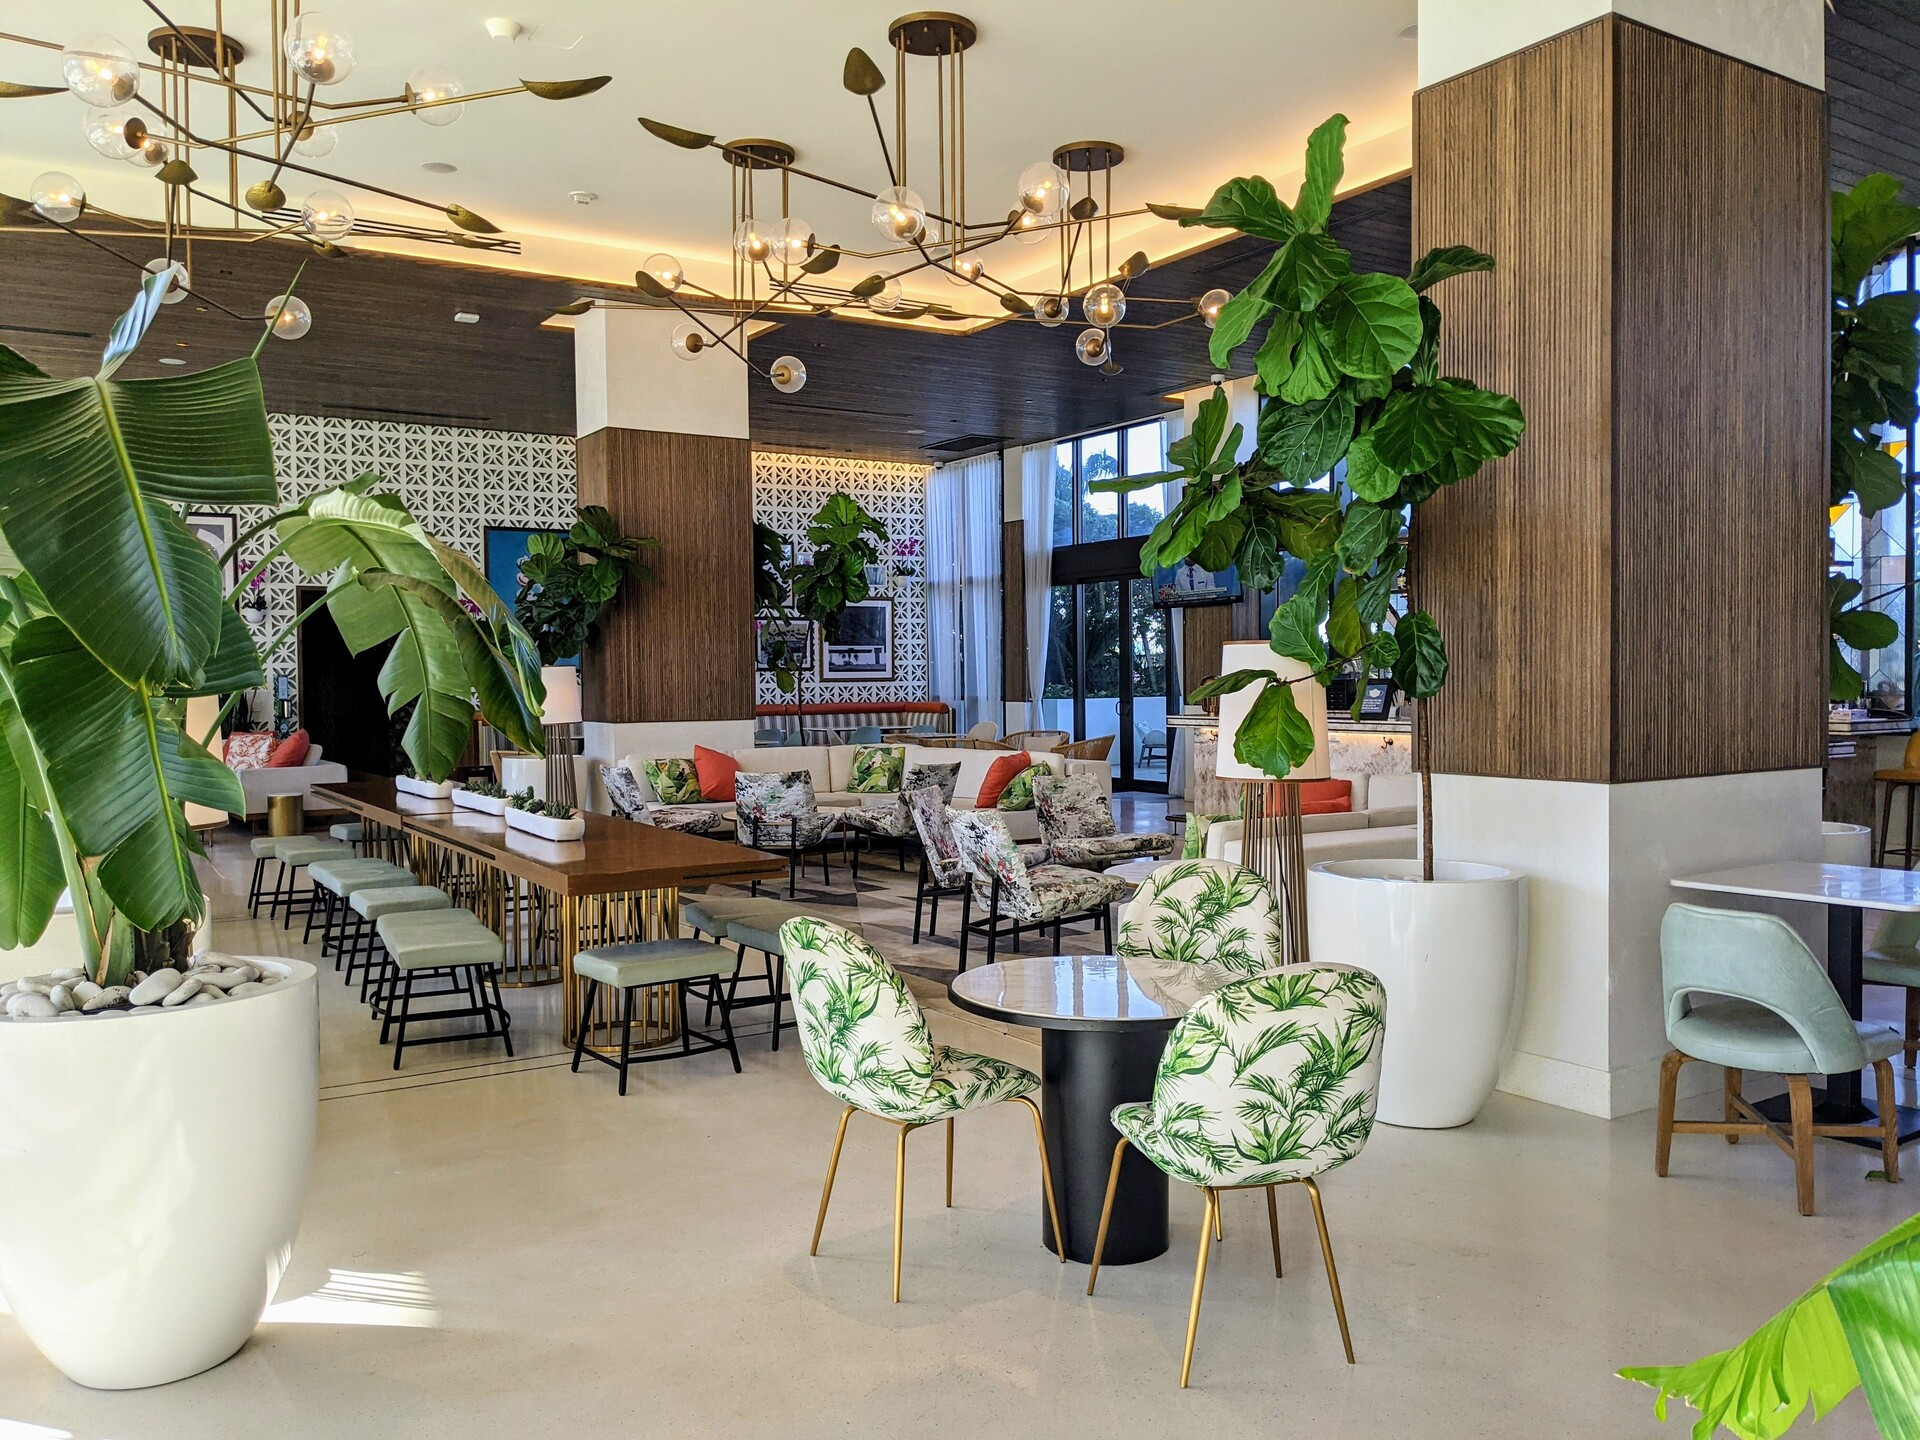 DesignAgency and Surfacing Solution partnered on this hotel lobby design for The Dalmar Hotel in Fort Lauderdale, Florida.  Solid wood tambour was used as accent pieces on the columns in the lounge.